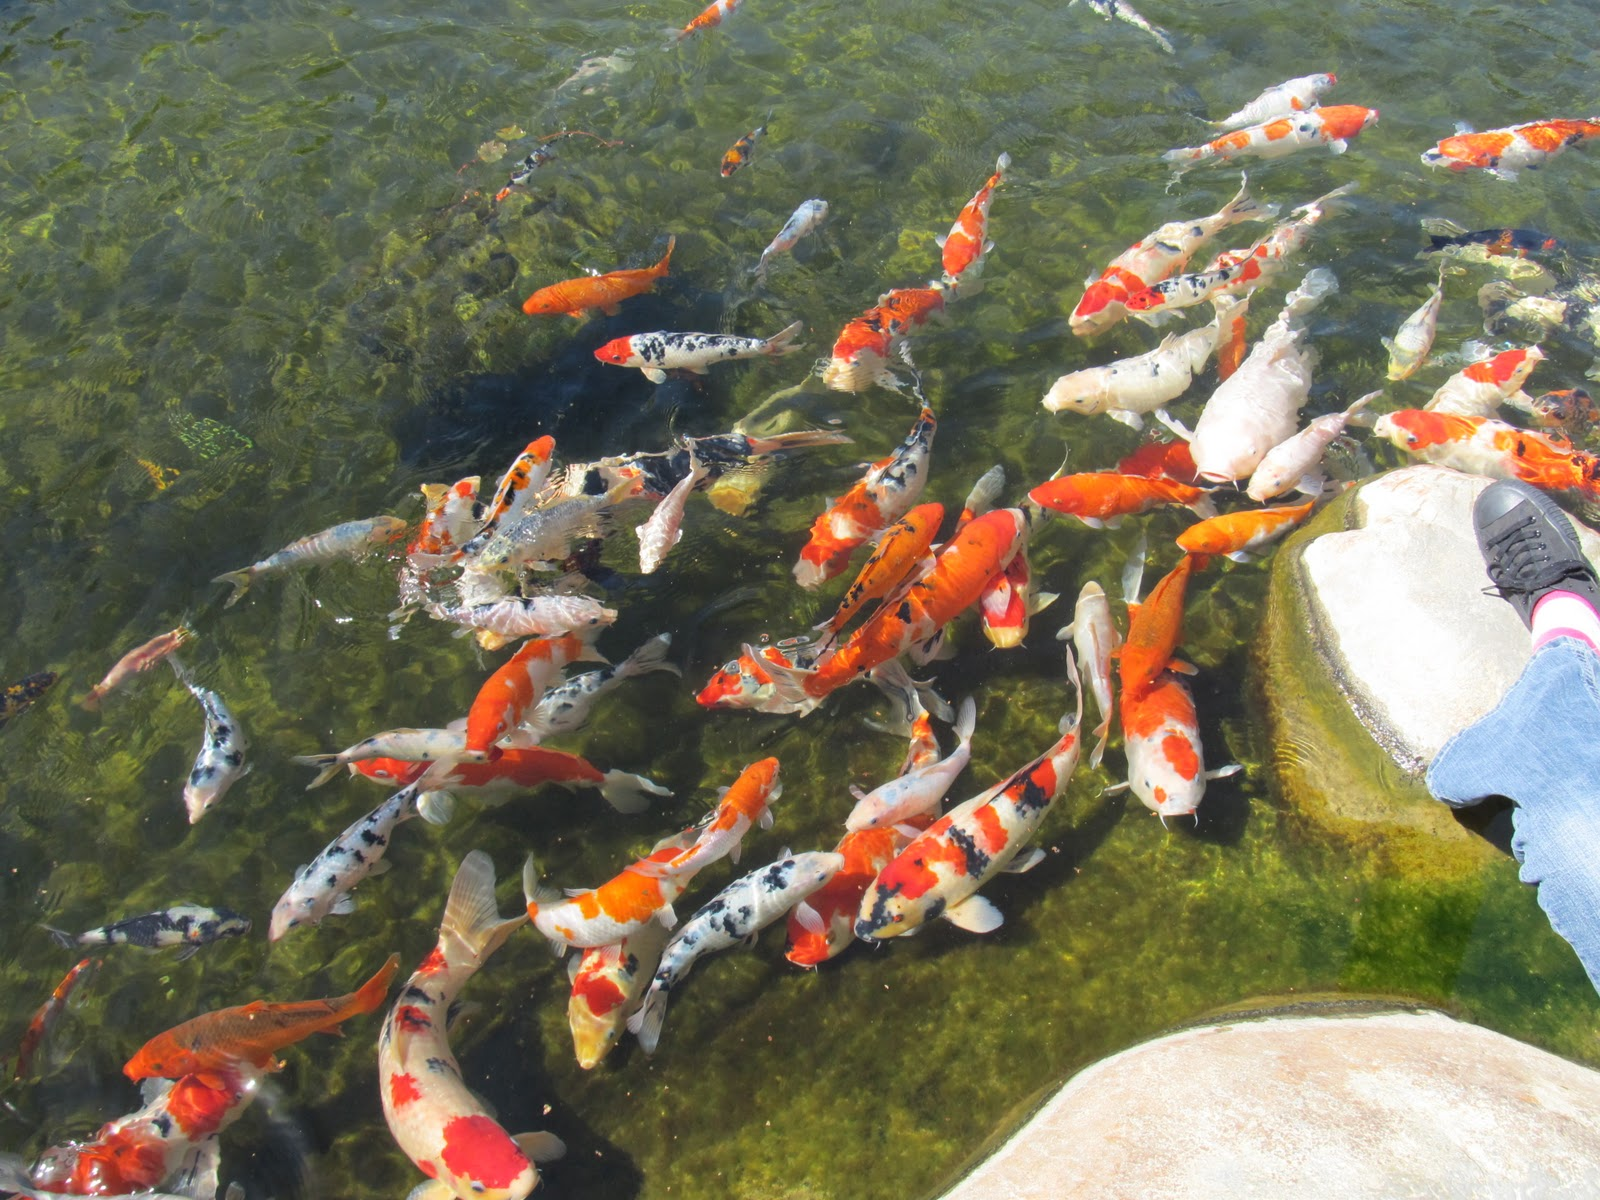 You Can Purchase Koi Pellets To Feed The Fish Check Out More Pictures Of Best Anese Garden In Long Beach